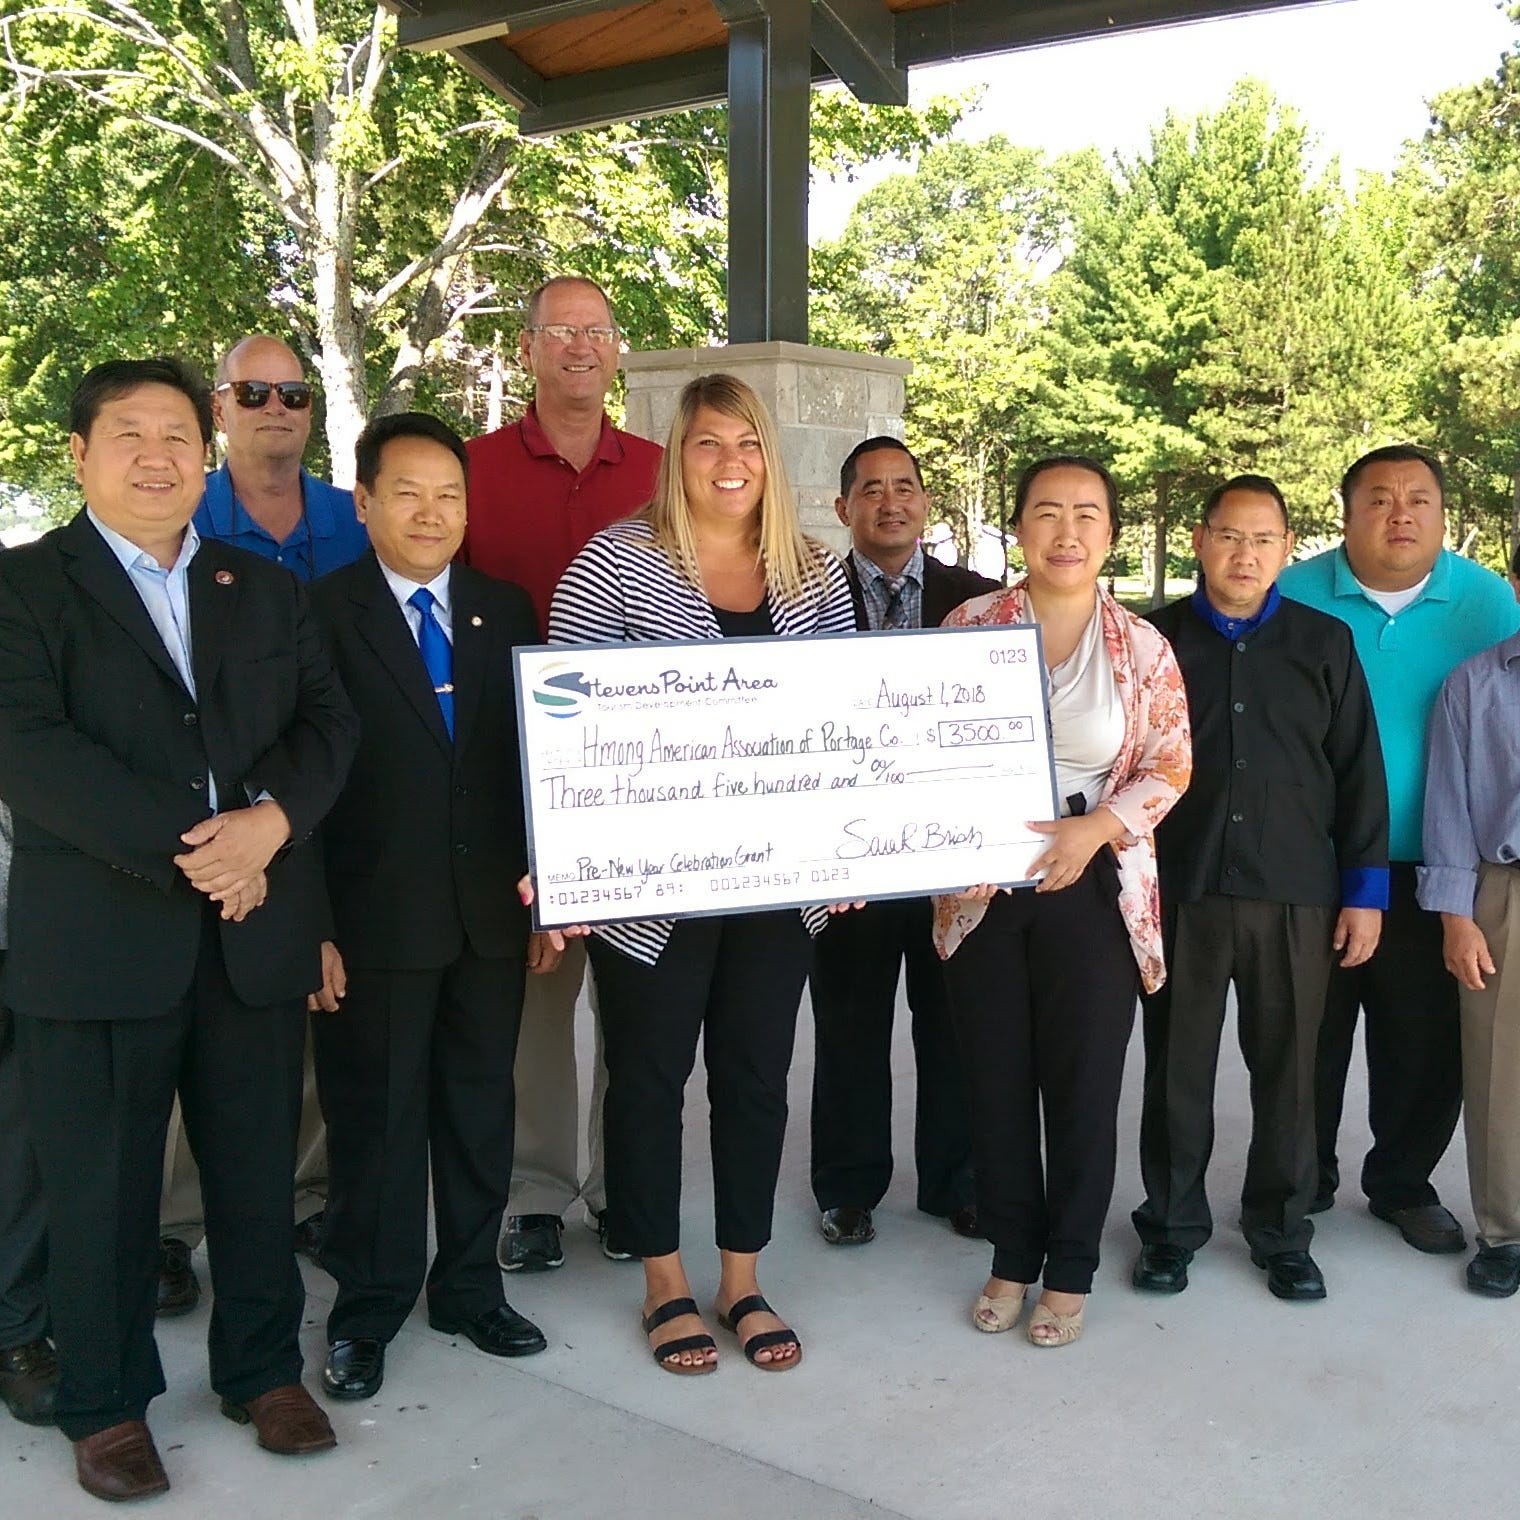 Tourism grant to help Hmong celebration continue growth in Plover